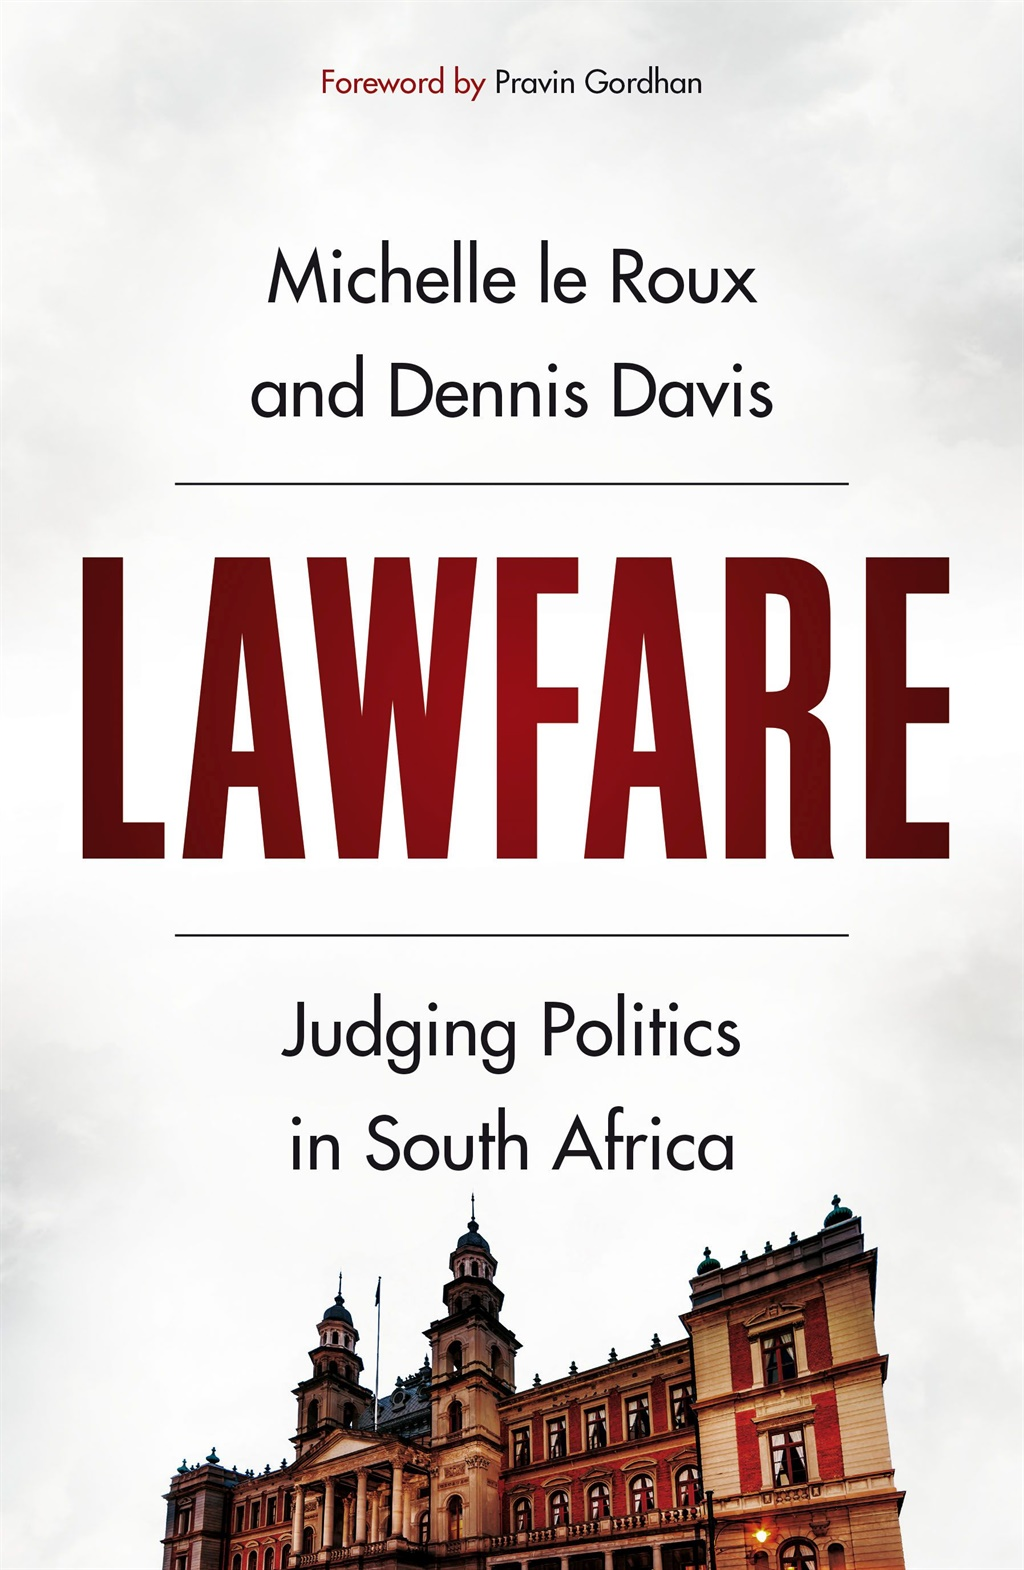 Lawfare: Why blaming the Constitution for SA's problems is not the answer